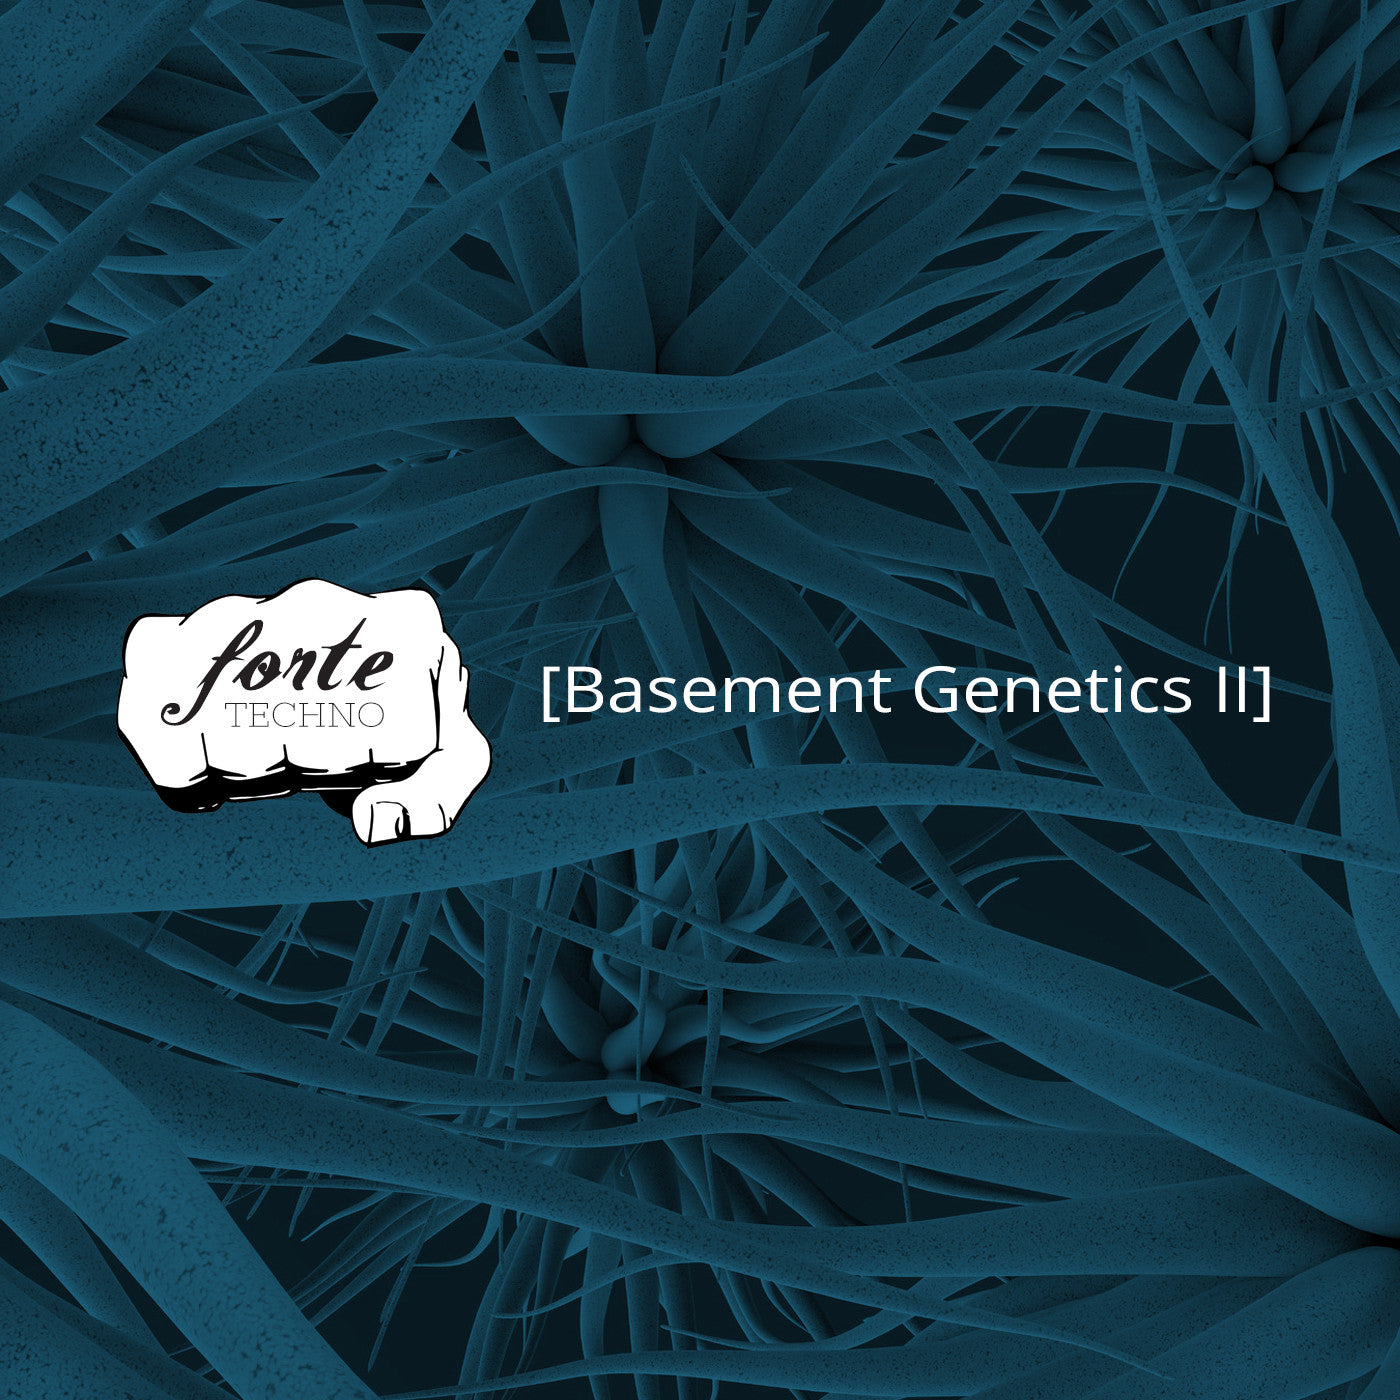 Forte Techno - Basement Genetics II - Unearthed Sounds